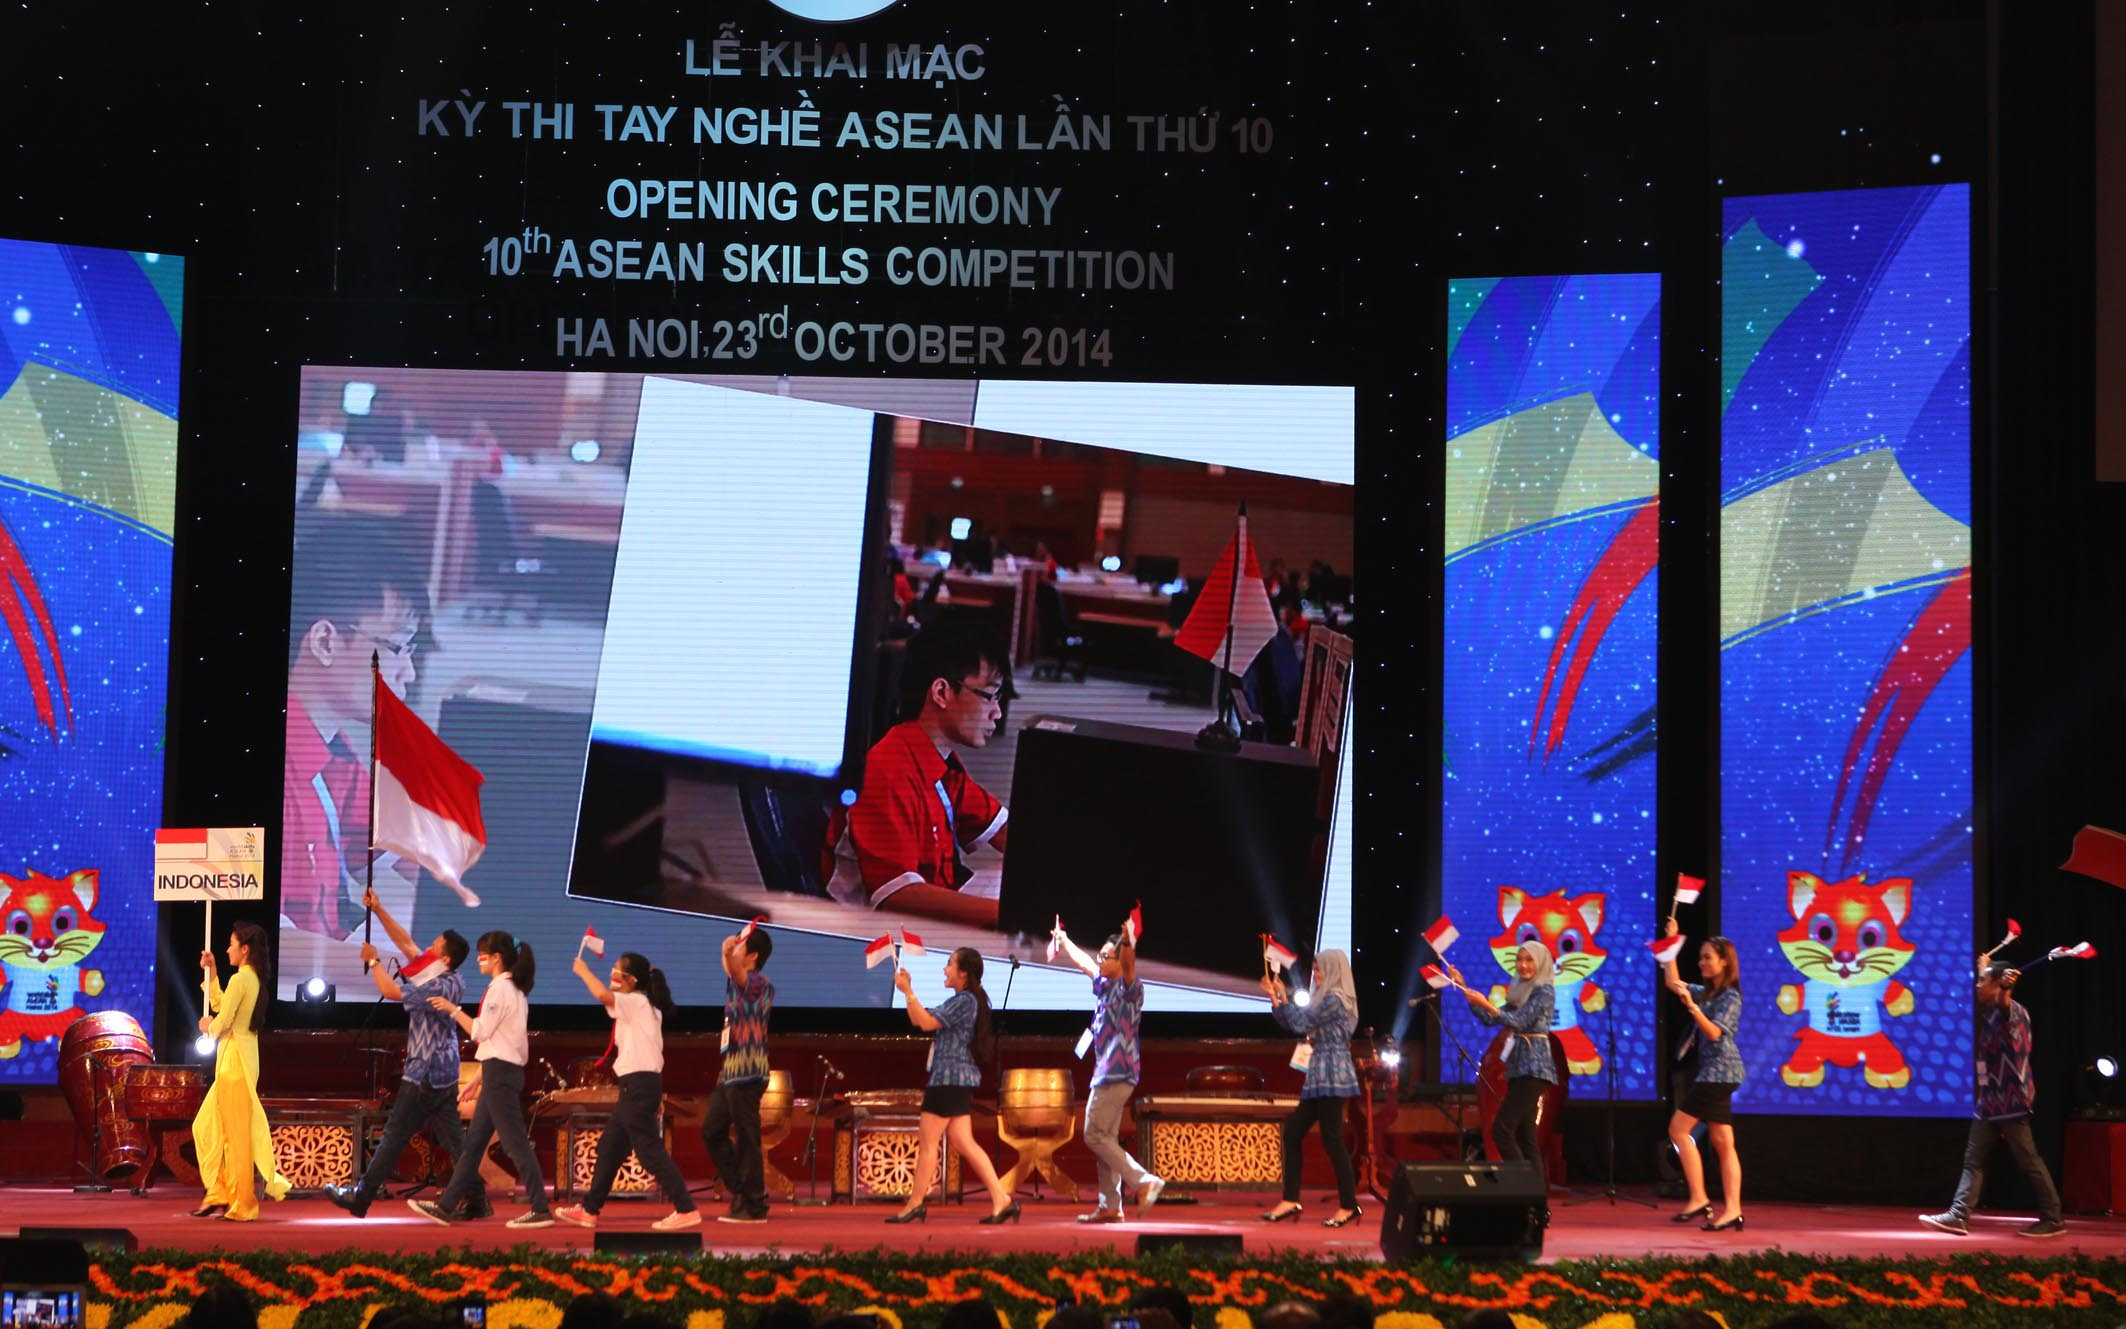 Indonesia's delegation parades into stage